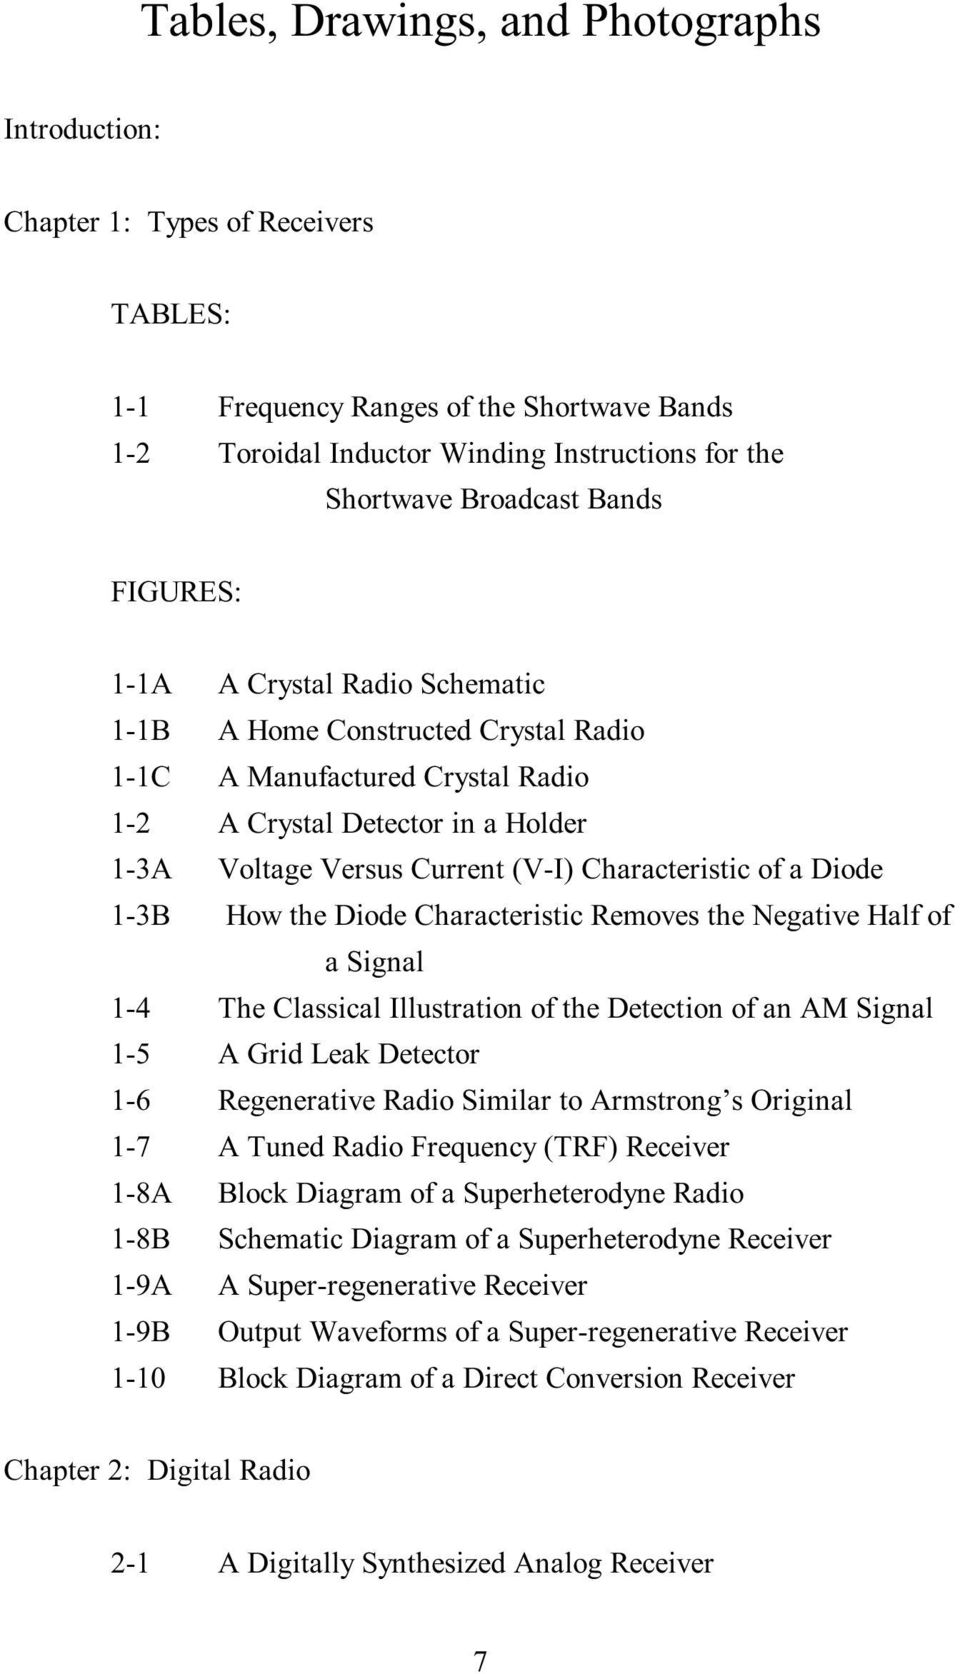 The New Radio Receiver Building Handbook Pdf Circuit Diagram Characteristic Of A Diode 1 3b How Removes Negative Half